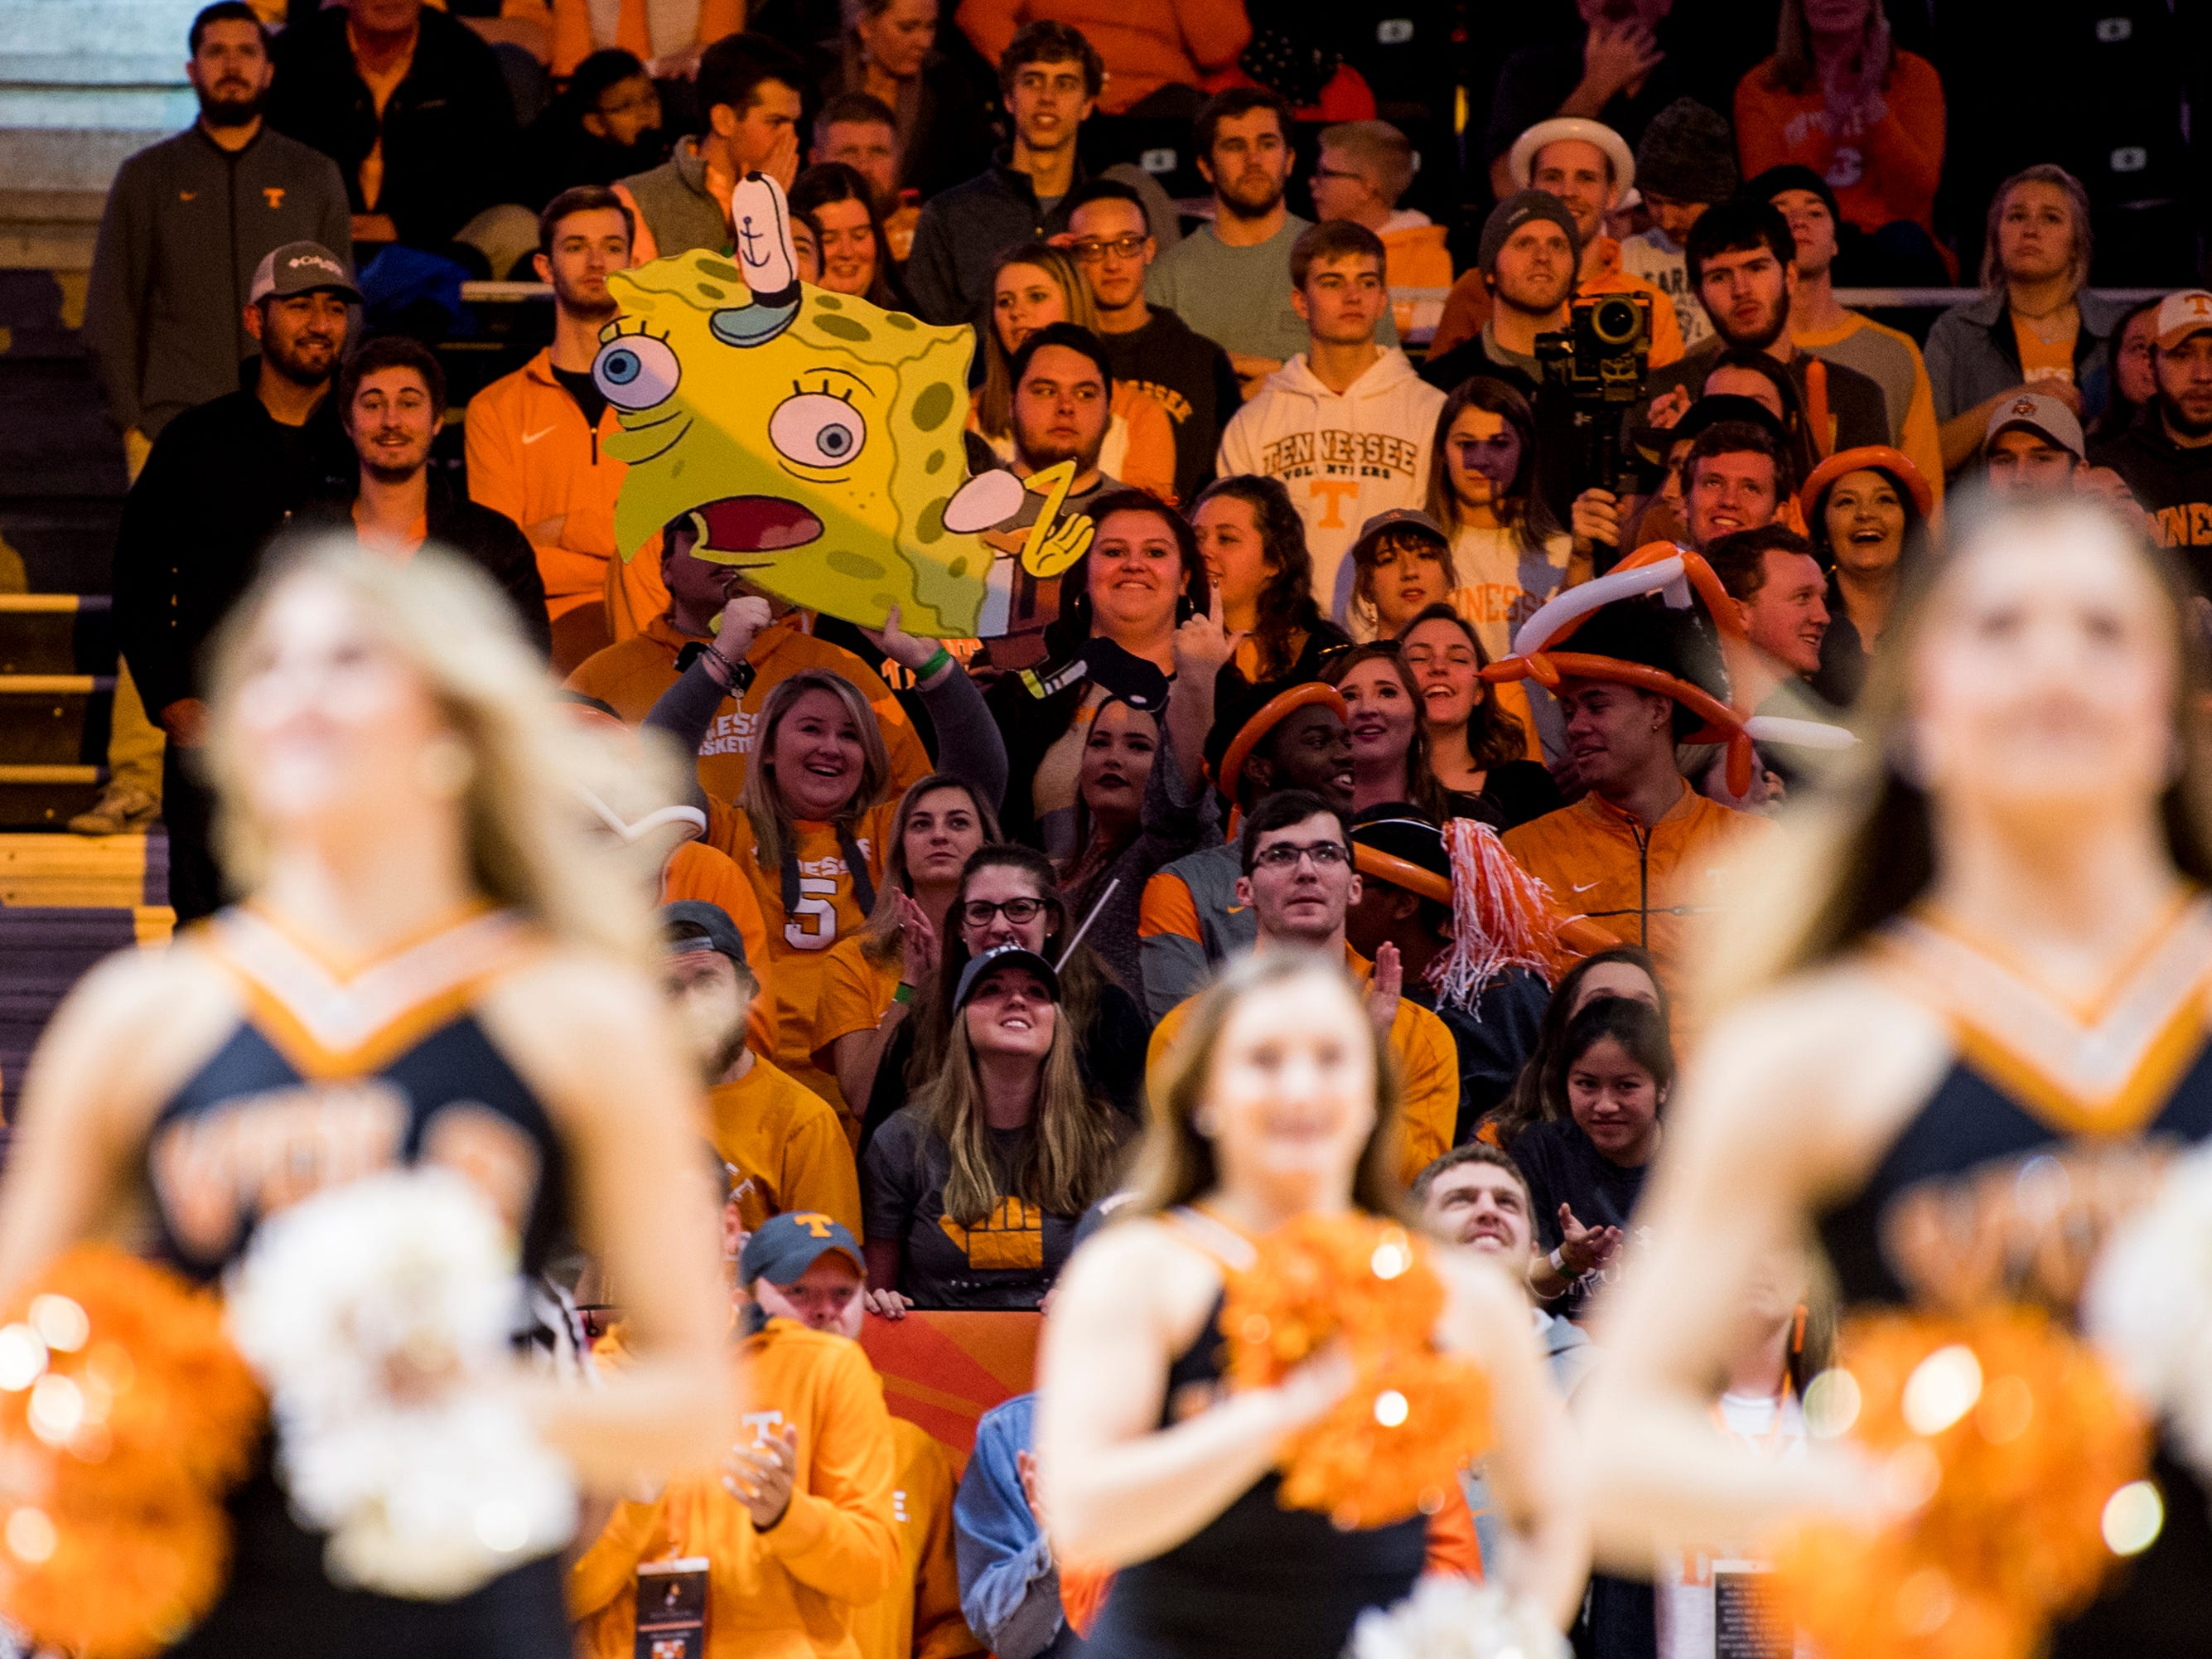 Students hold up signs during Tennessee's home SEC game against South Carolina at Thompson-Boling Arena in Knoxville on Wednesday, February 13, 2019.